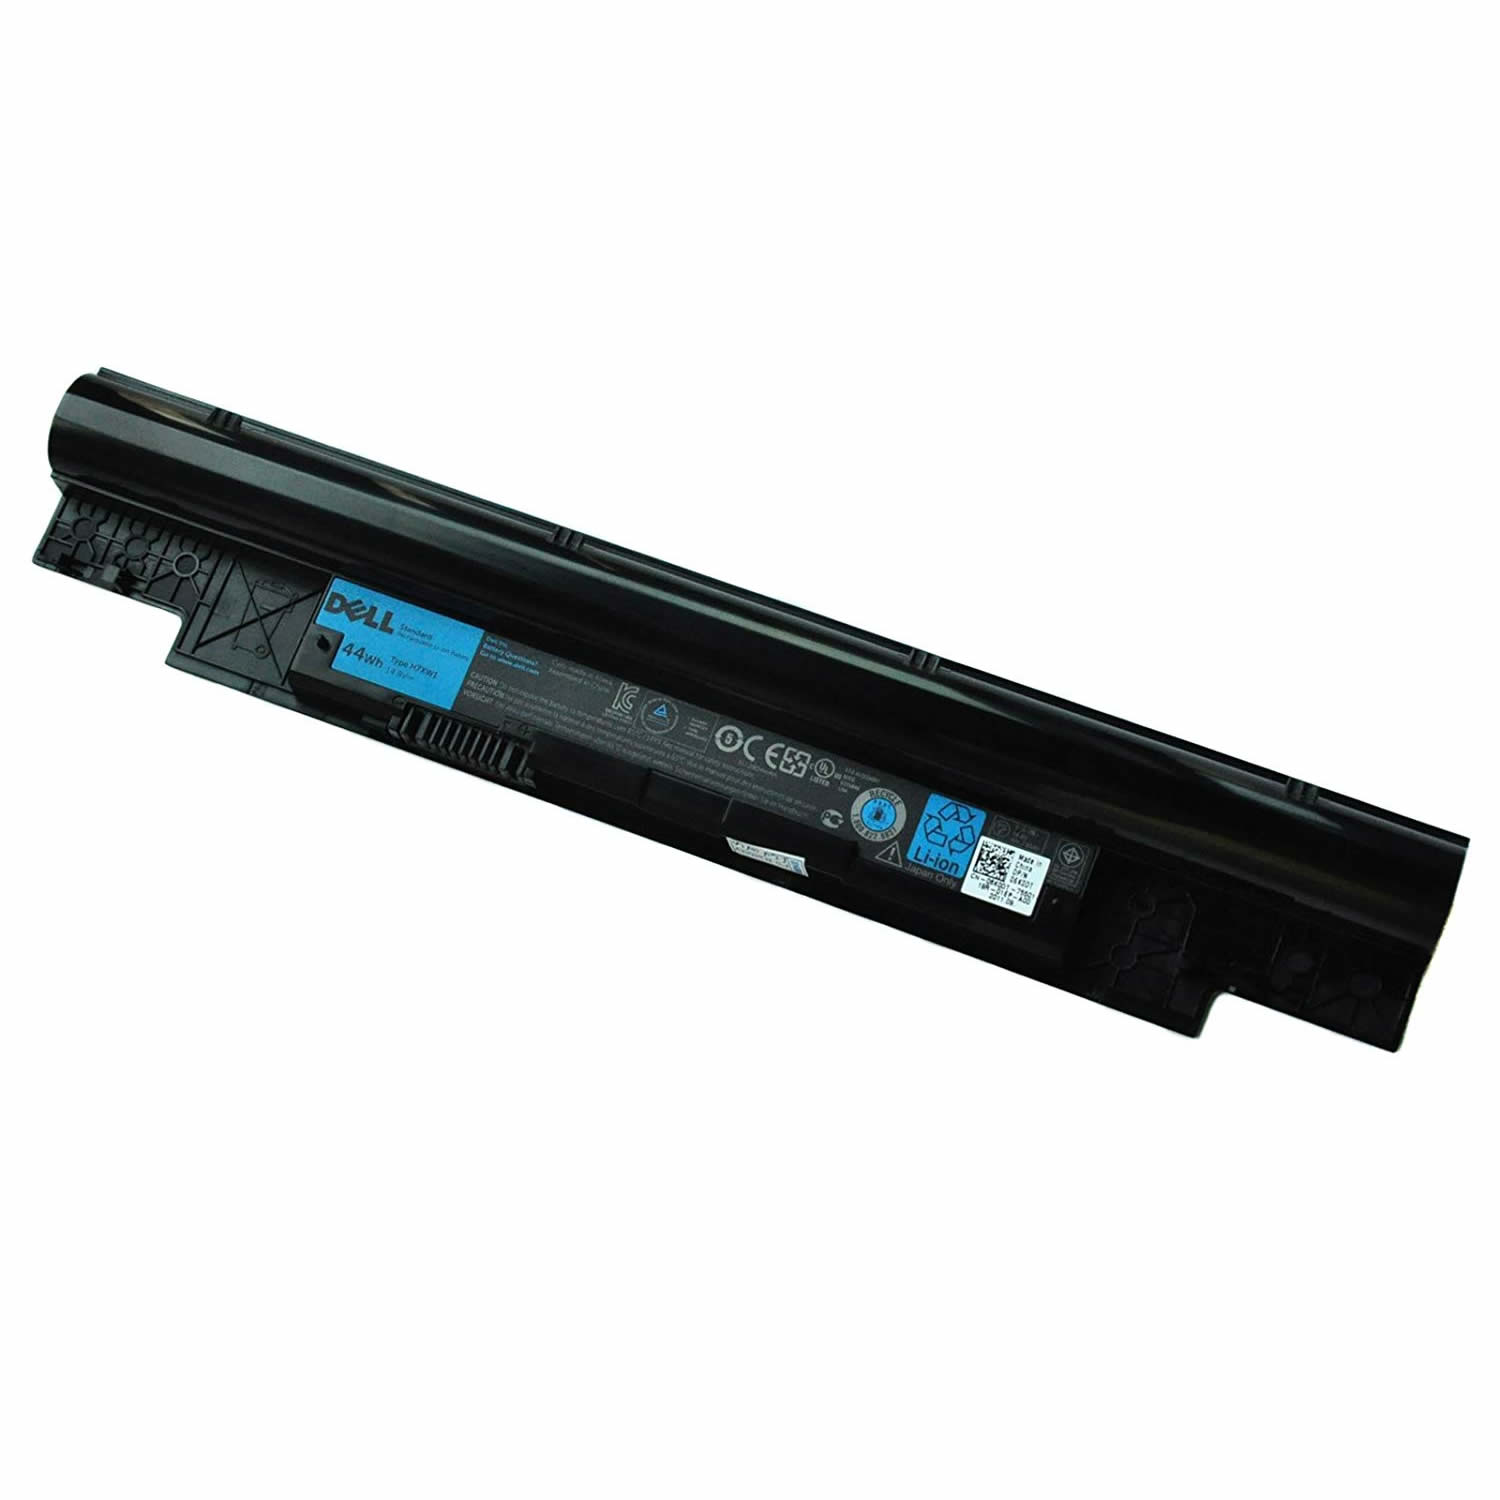 Batterie originale Dell H7XW1 JD41Y 14.8V 44Wh pour ordinateur portable Dell Vostro V131 V131R V131D séries